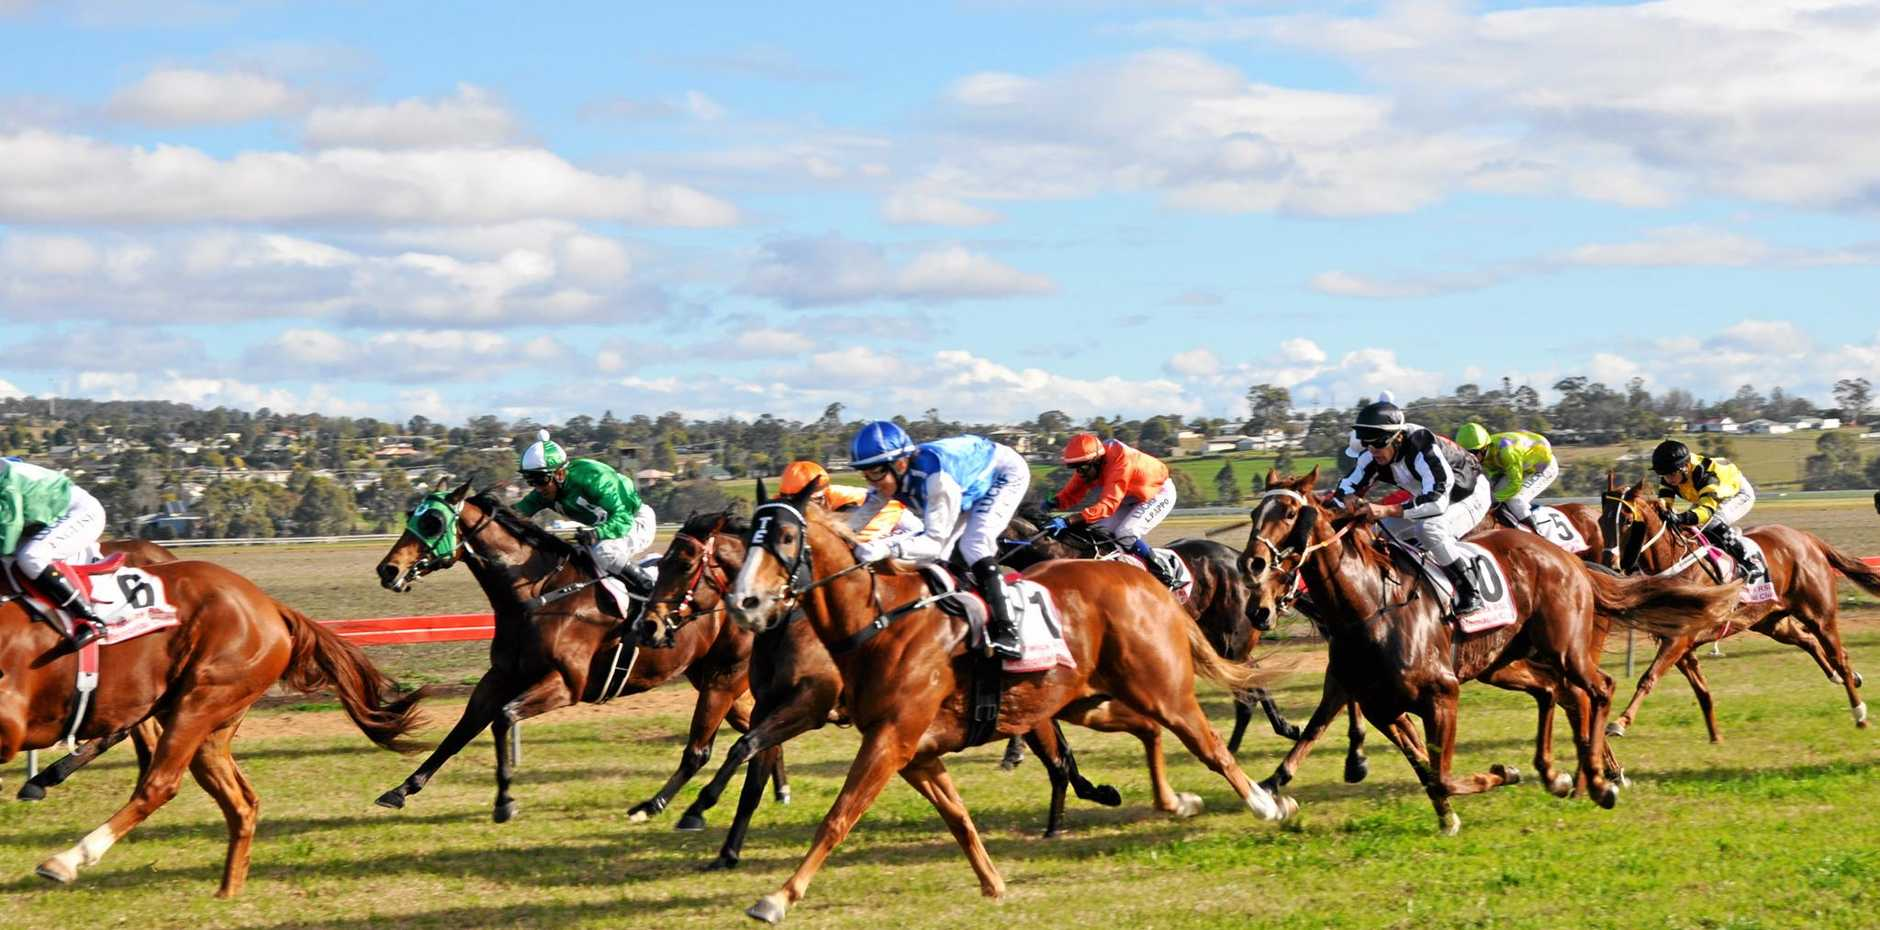 WINTER CARNIVAL: The first race of the 2015 Killarney Cup